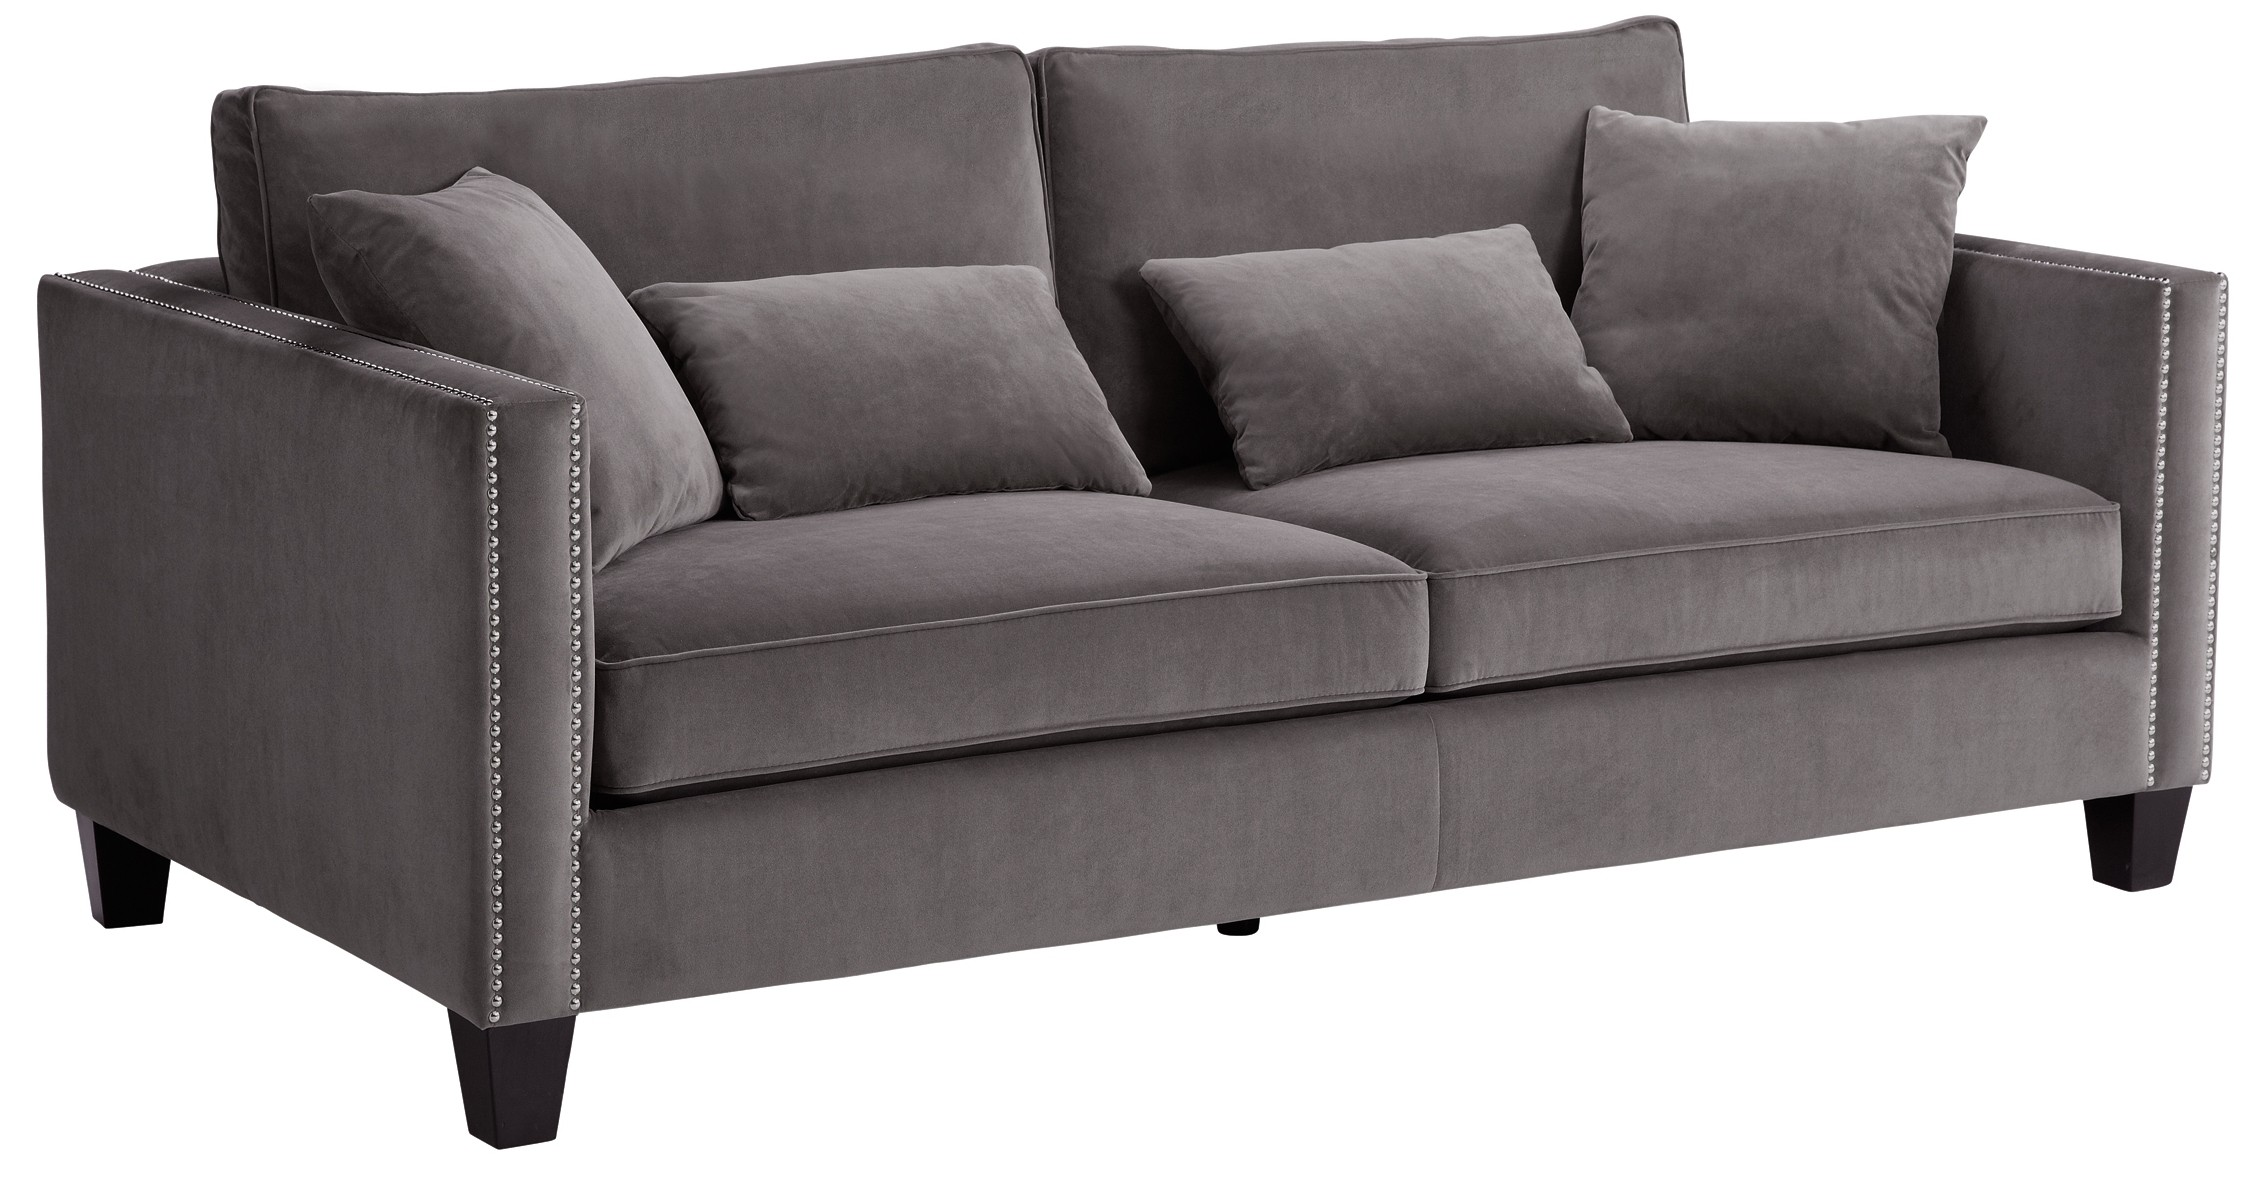 Cathedral Grey Portsmouth Sofa From Sunpan 50339 3